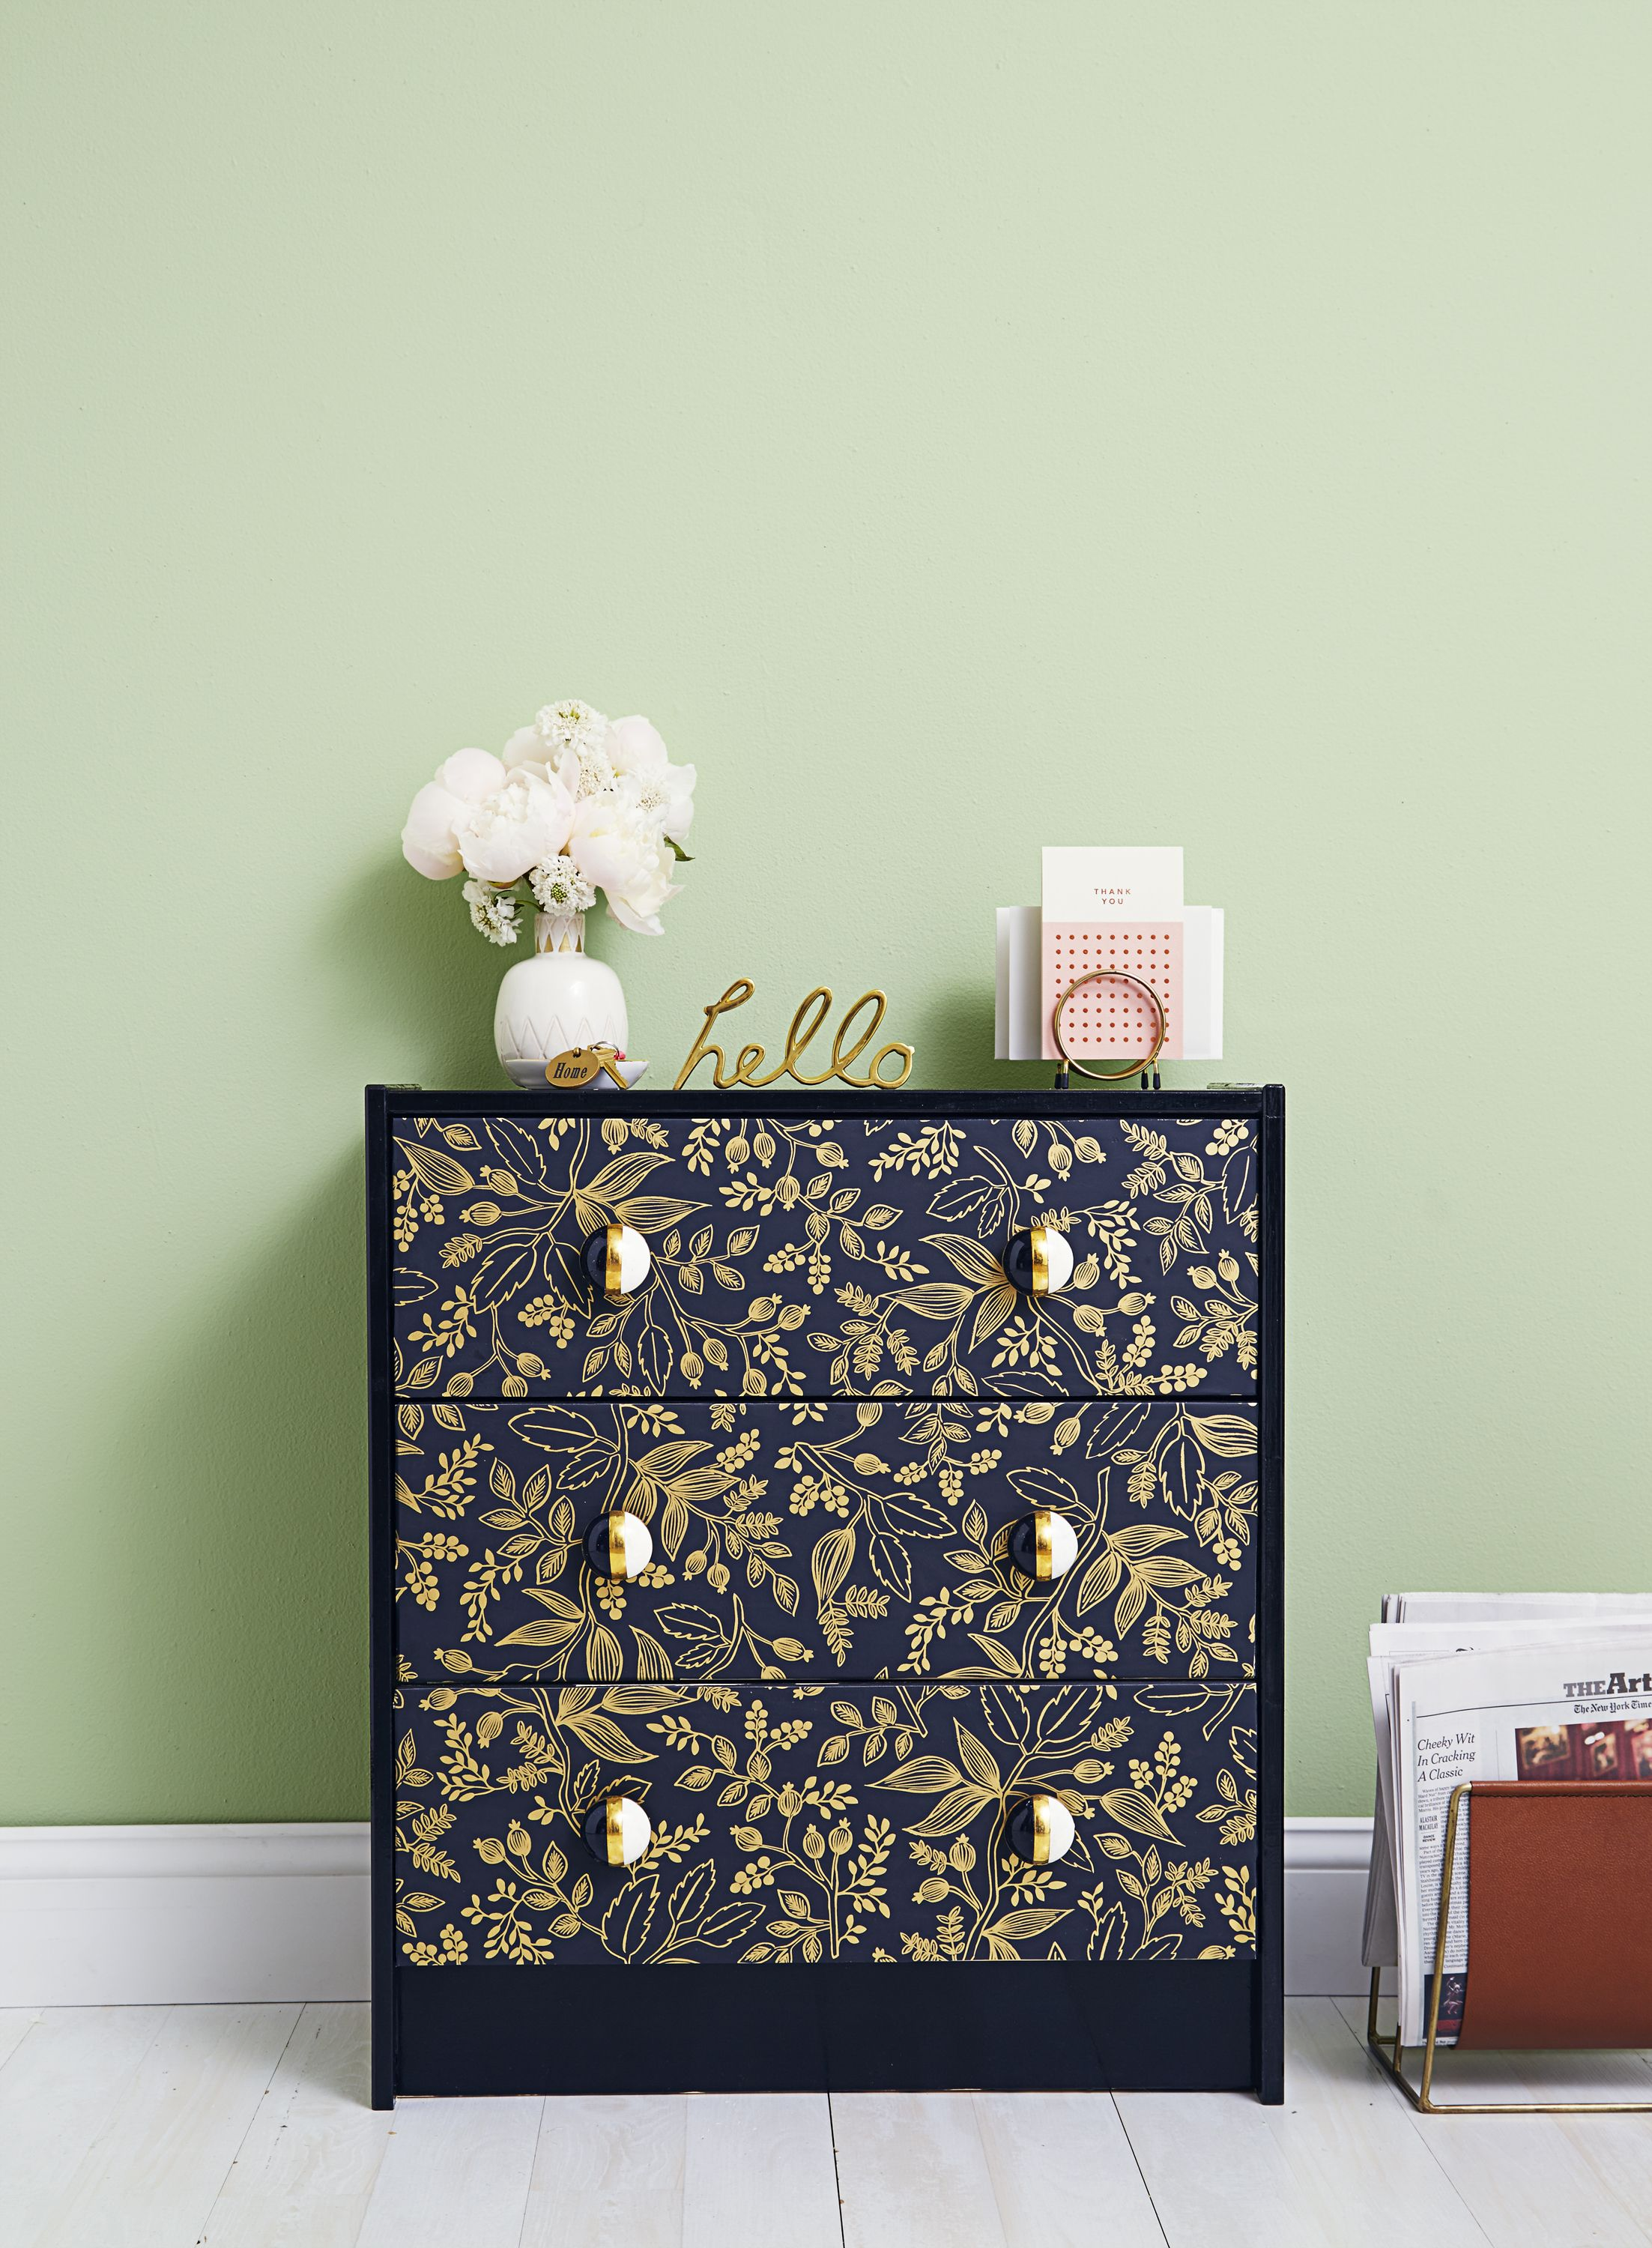 Ikea Rast Dresser Hacks How To Customize An Ikea Dresser